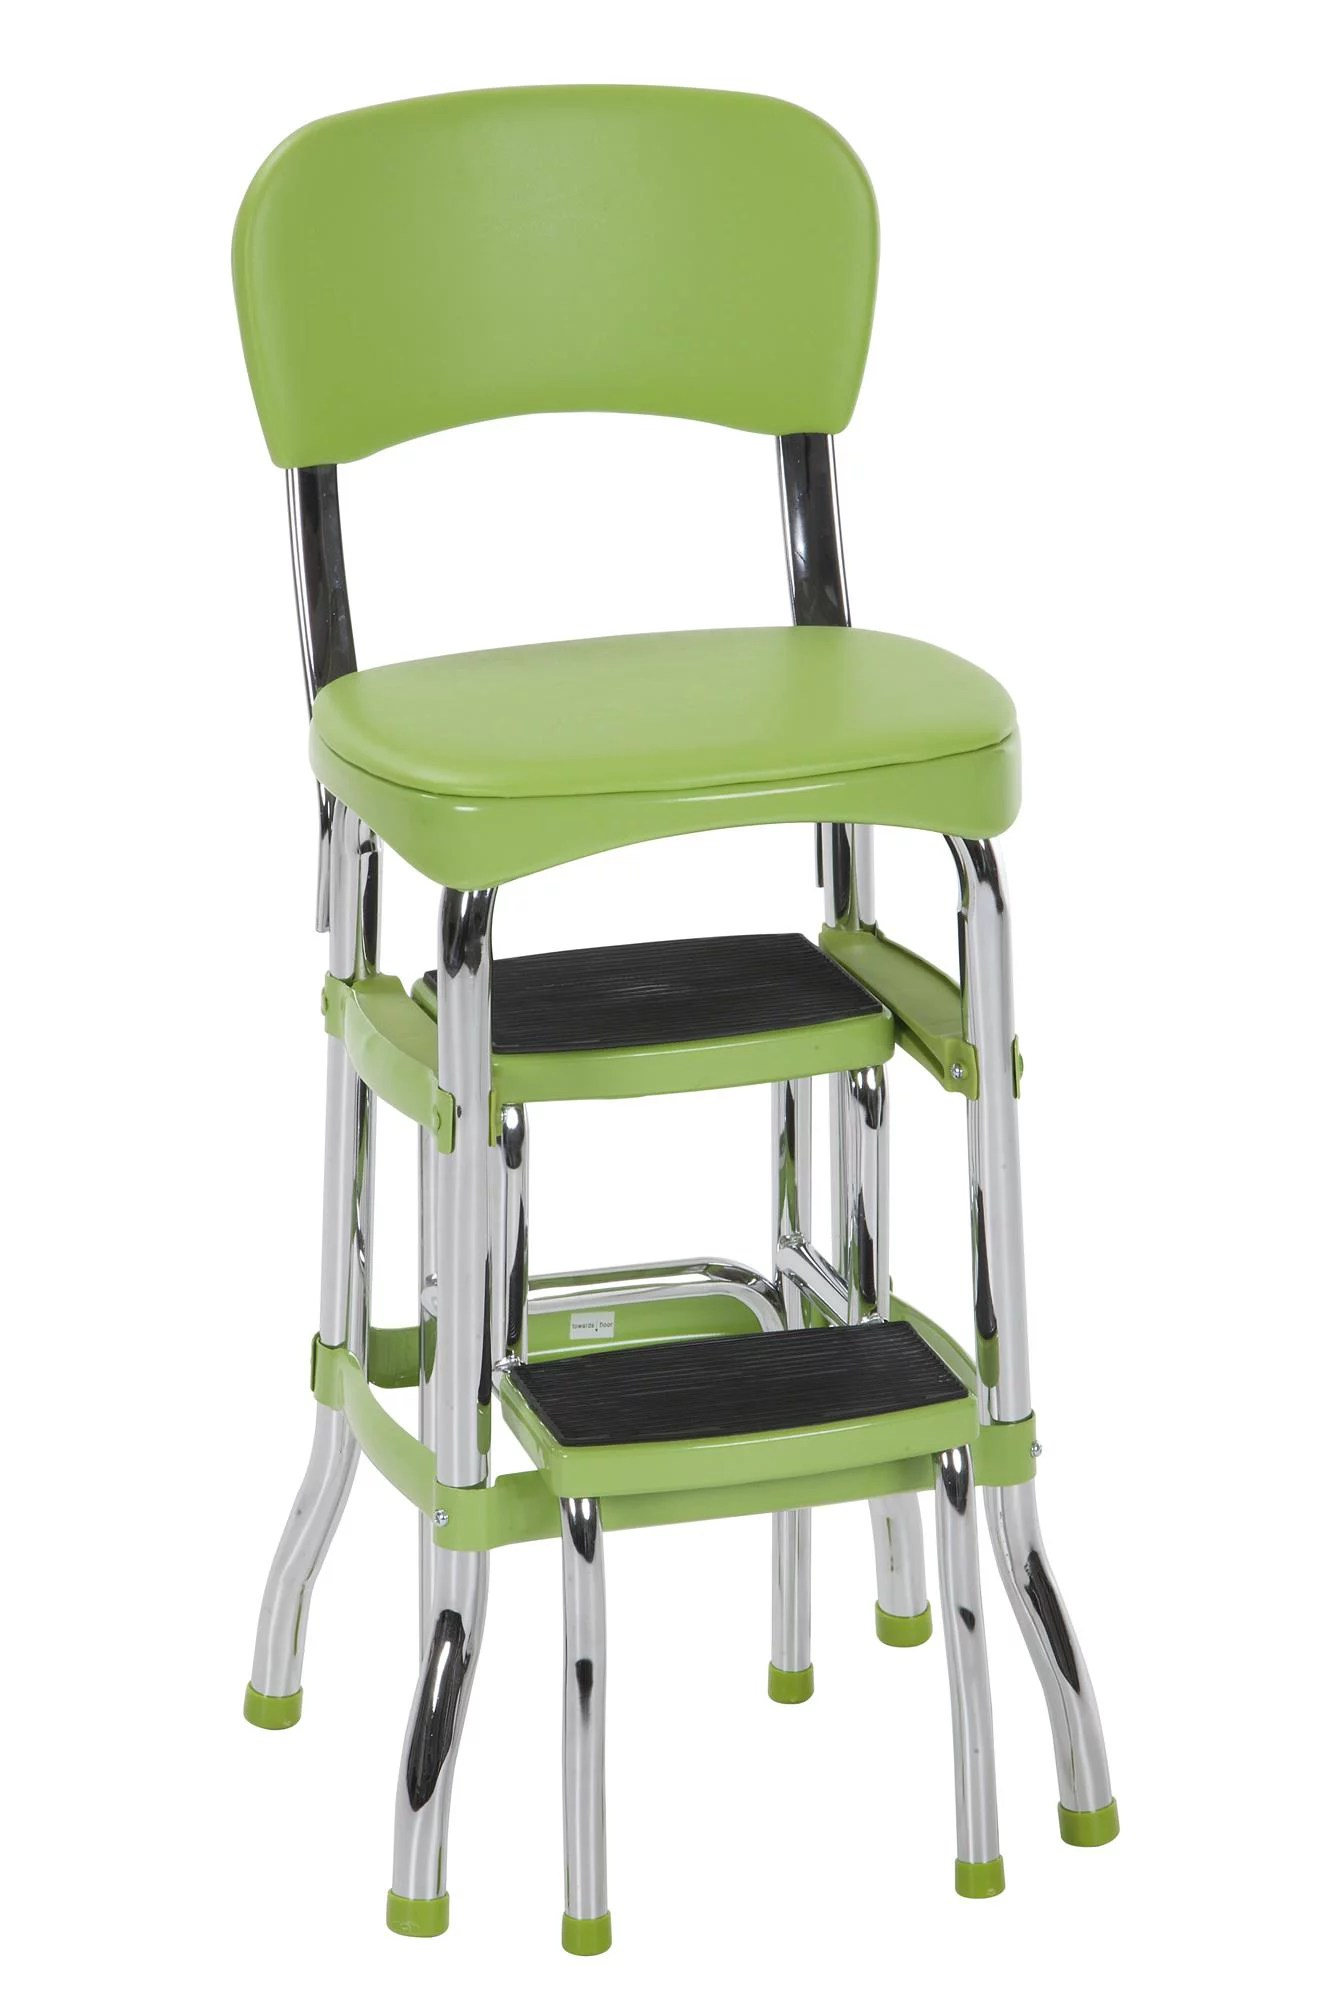 kitchen step stool with seat design cheap new cosco green retro counter chair folding